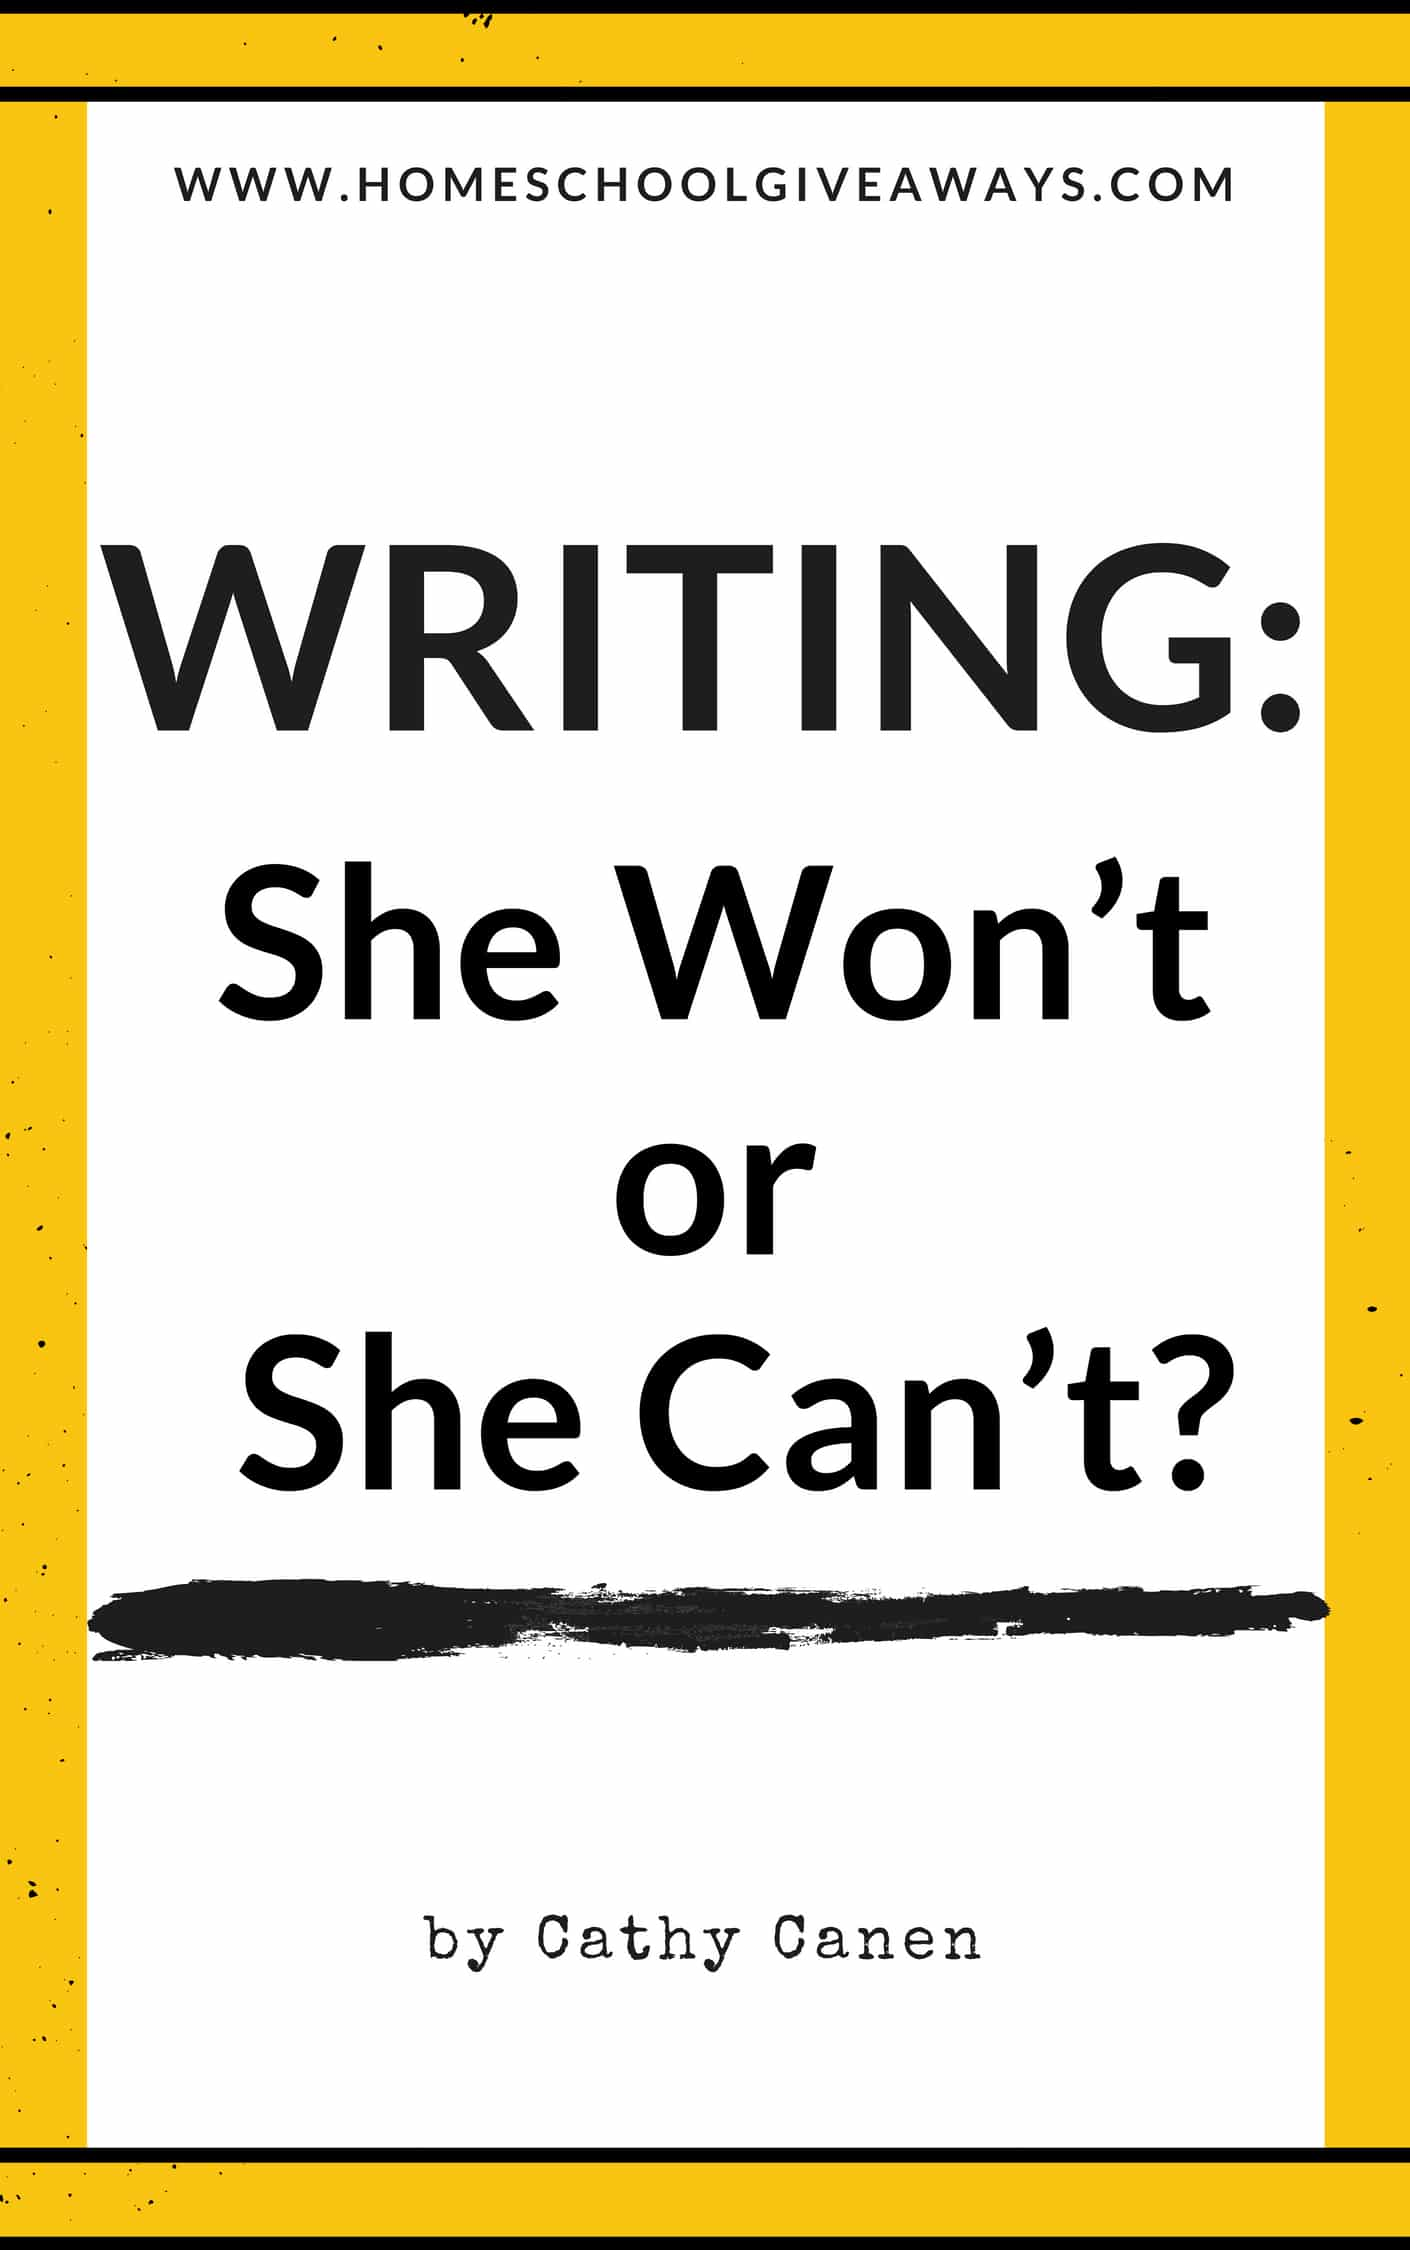 Writing_ she won't or she can't_-2